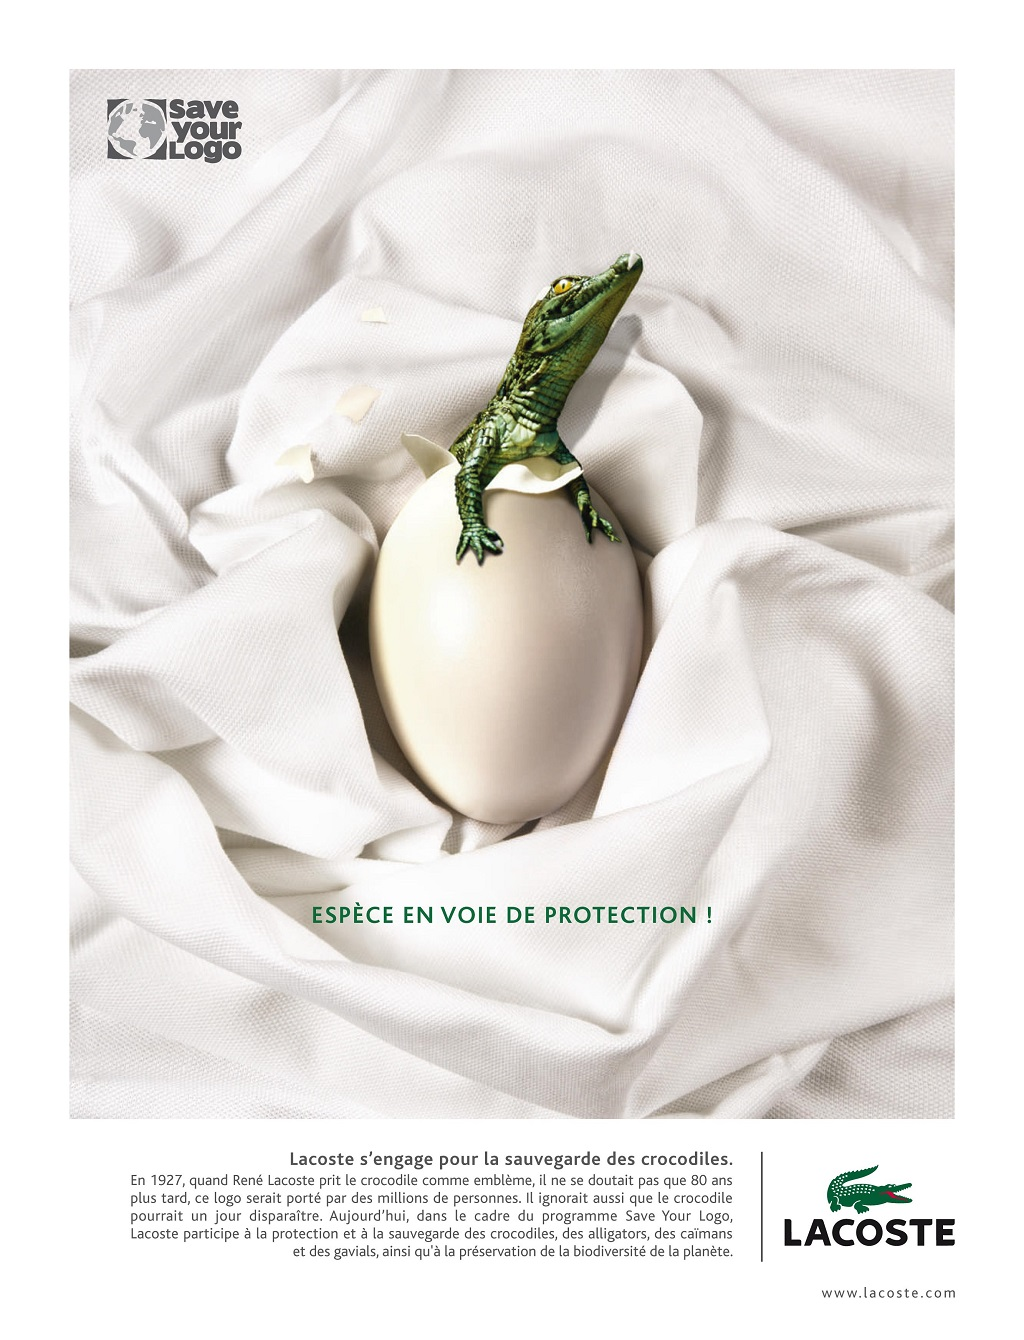 save-your-logo lacoste